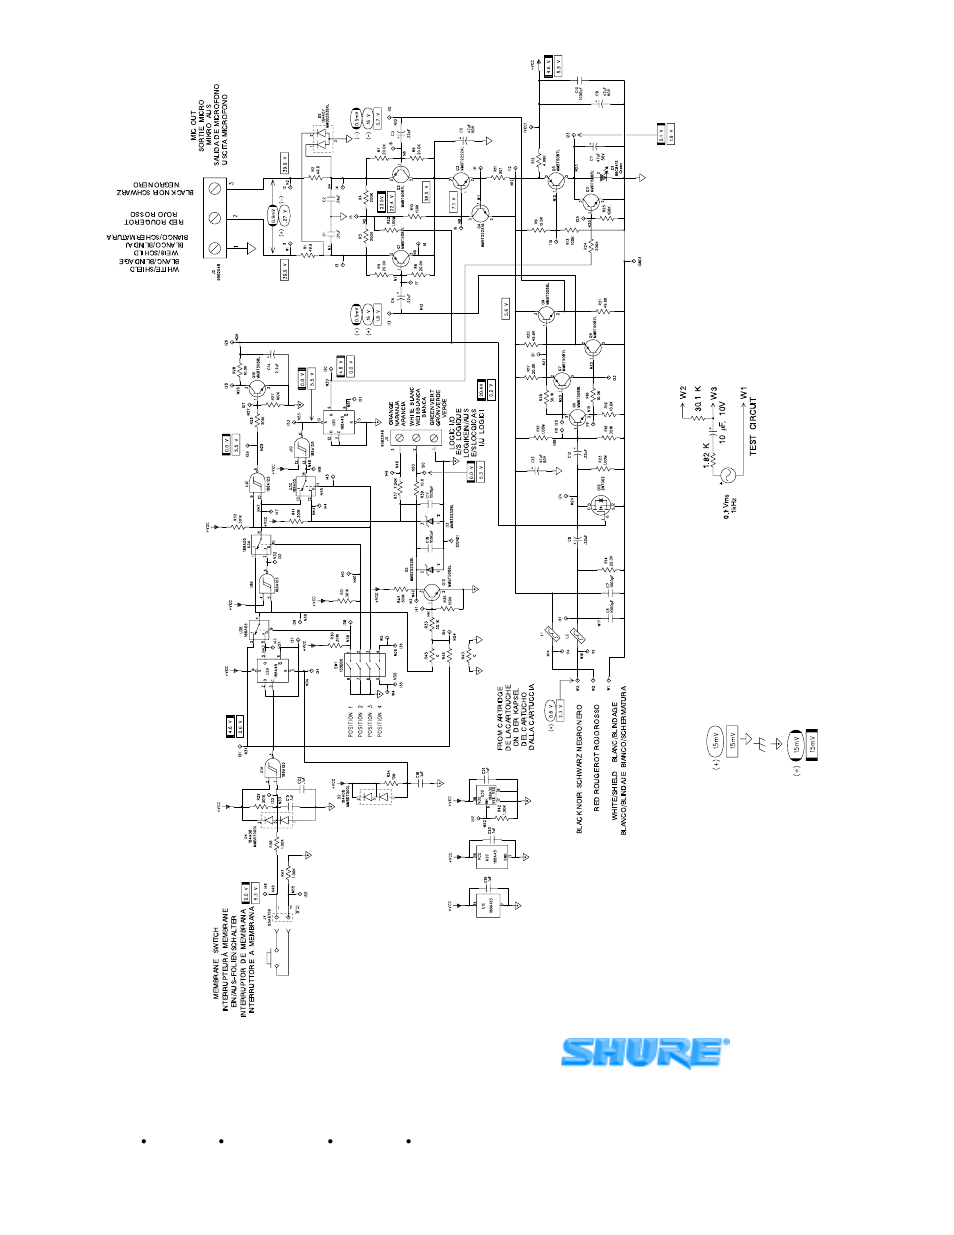 shure mx300 user manual